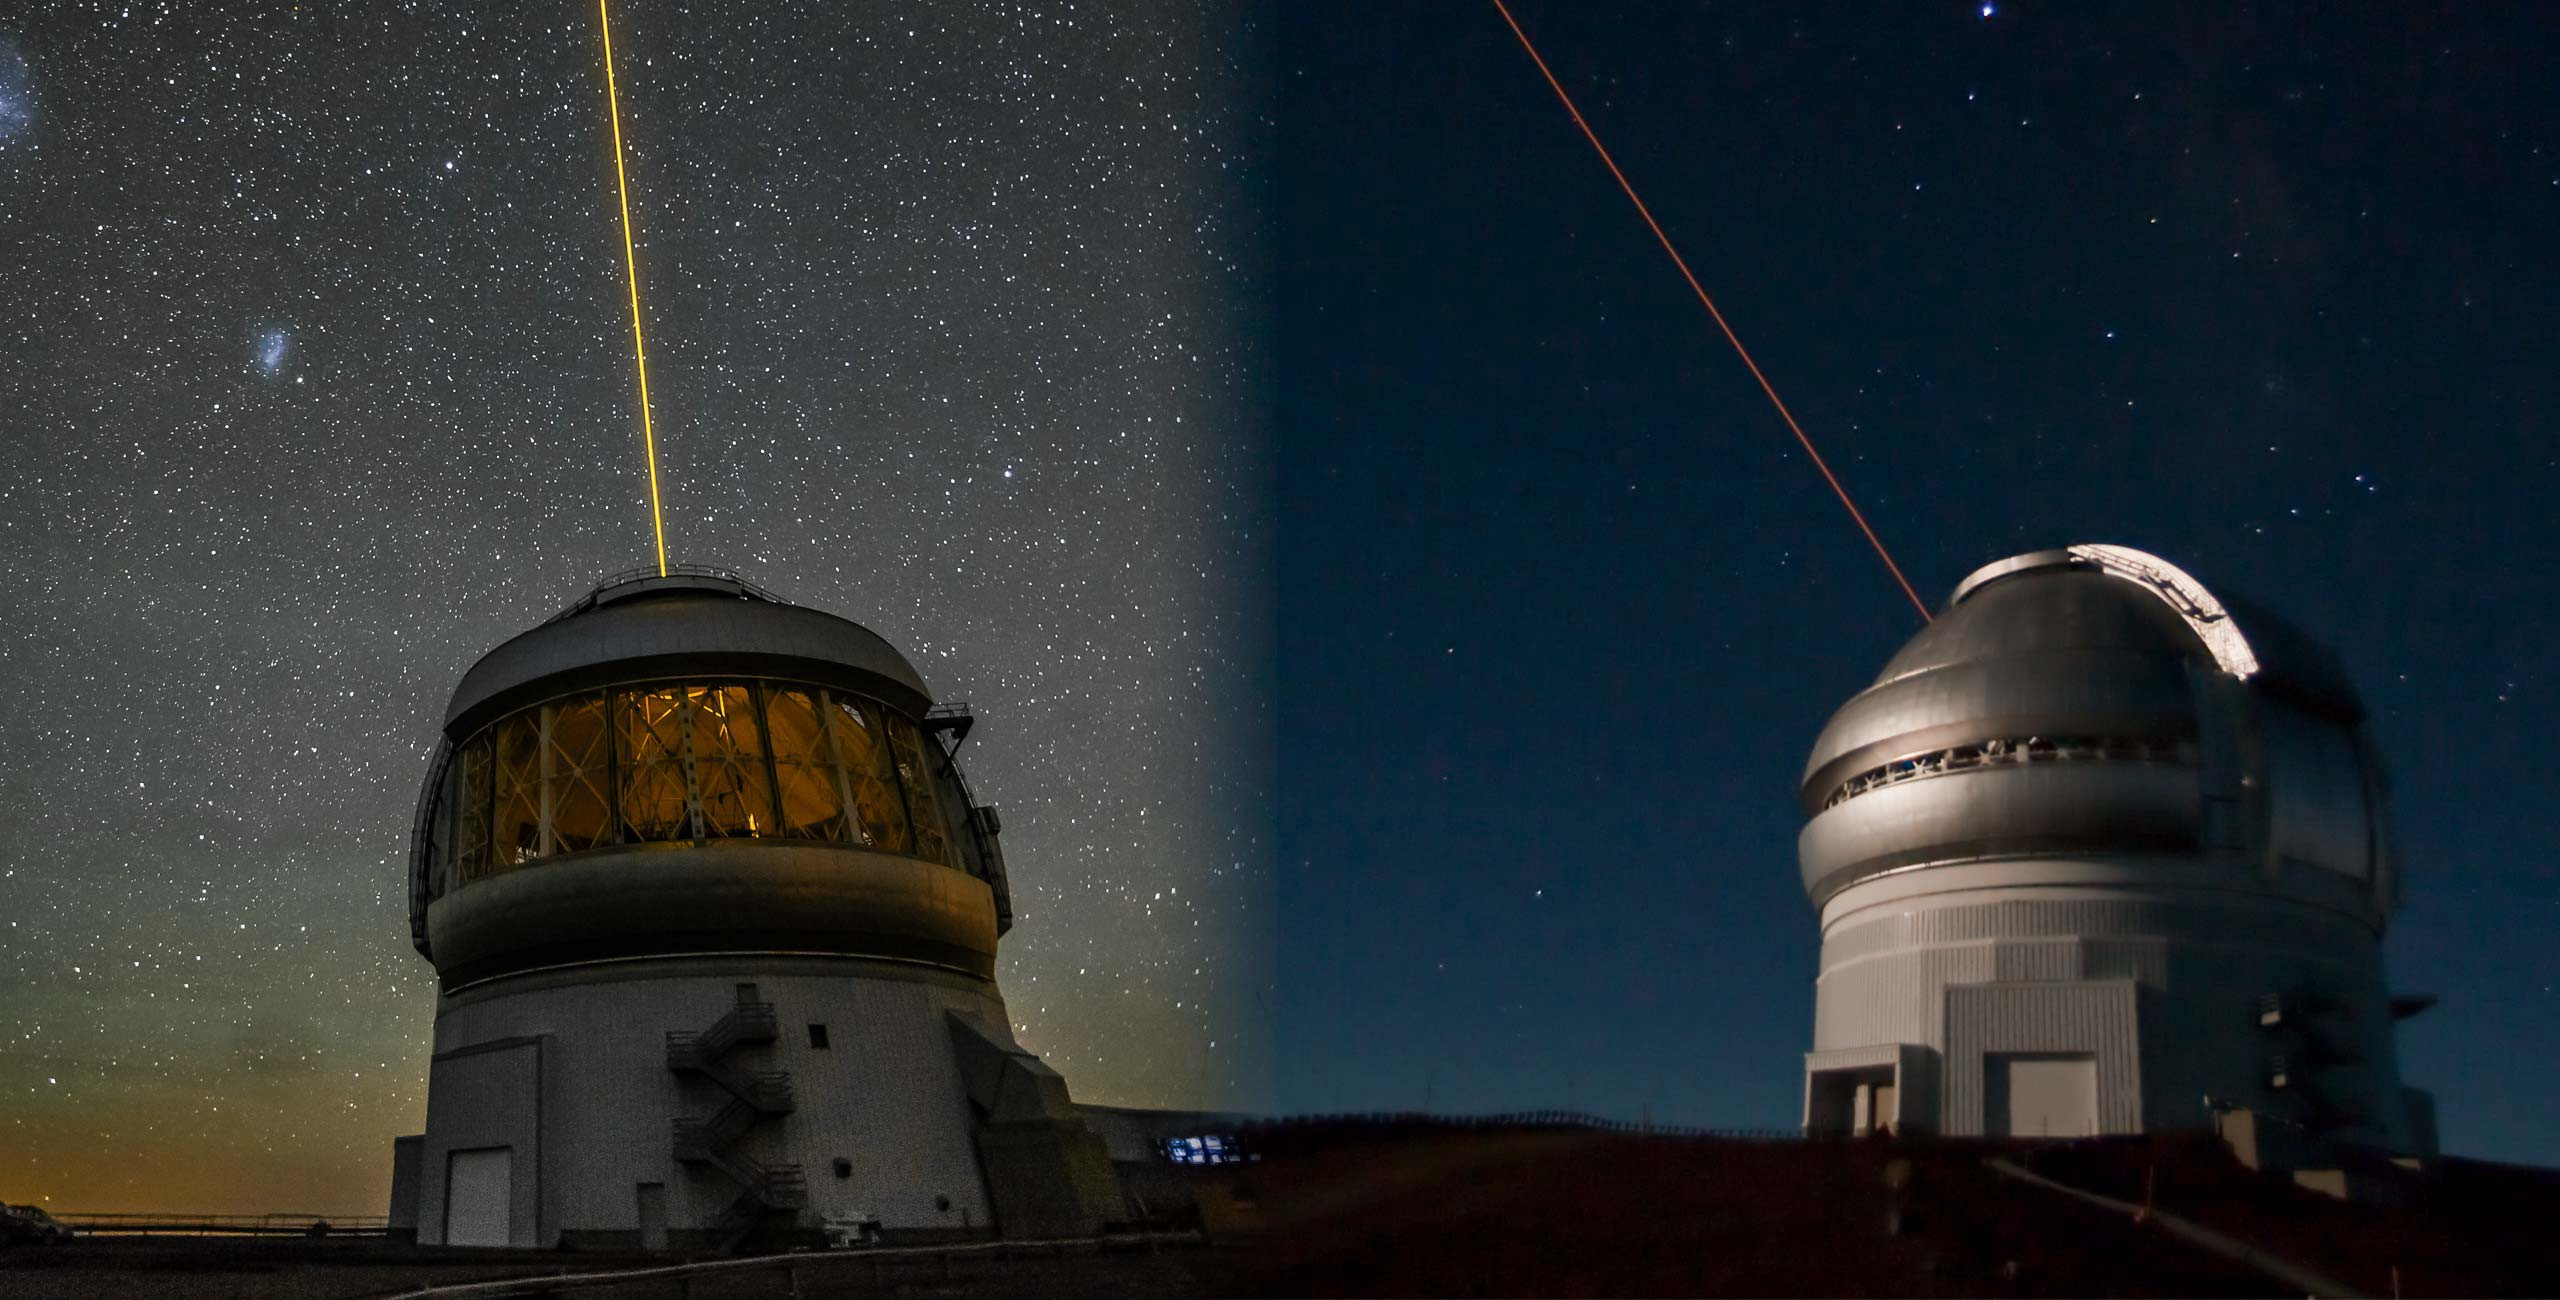 A pair of telescope domes, as one fires a laser into the sky.